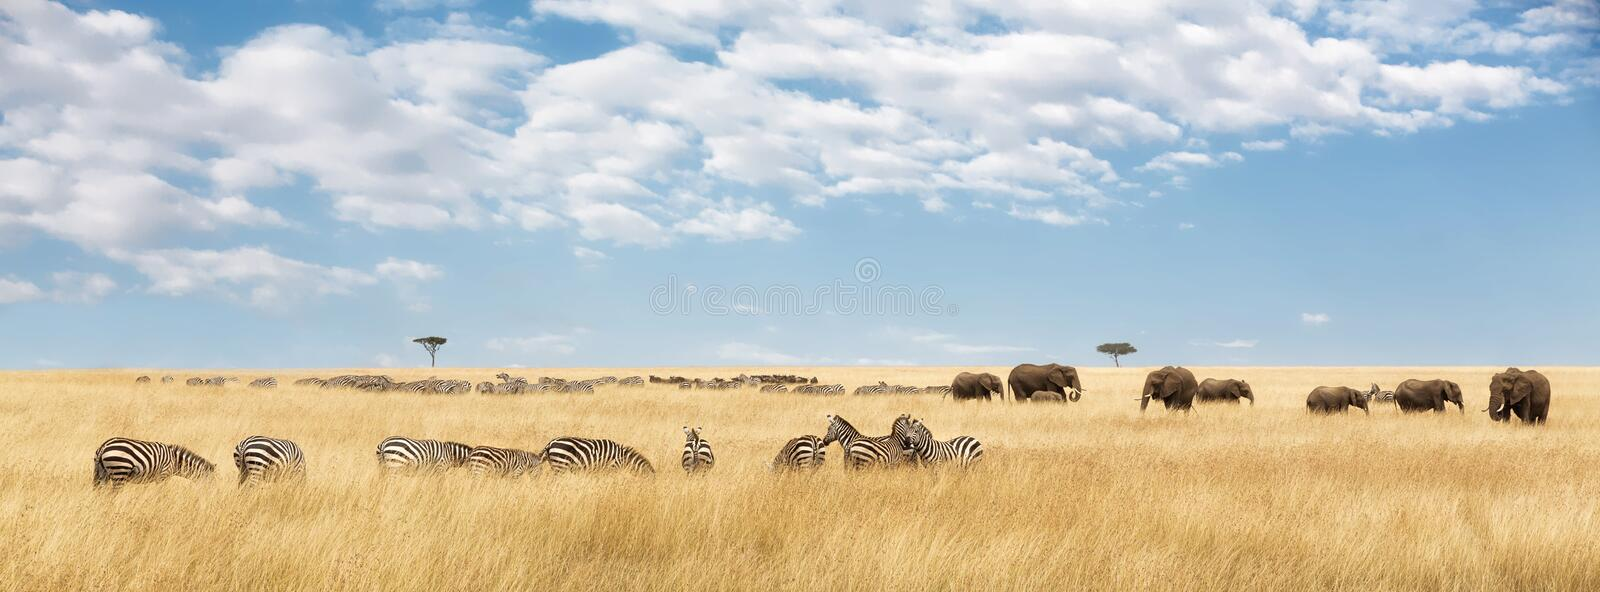 Elephants and zebra panorama royalty free stock images